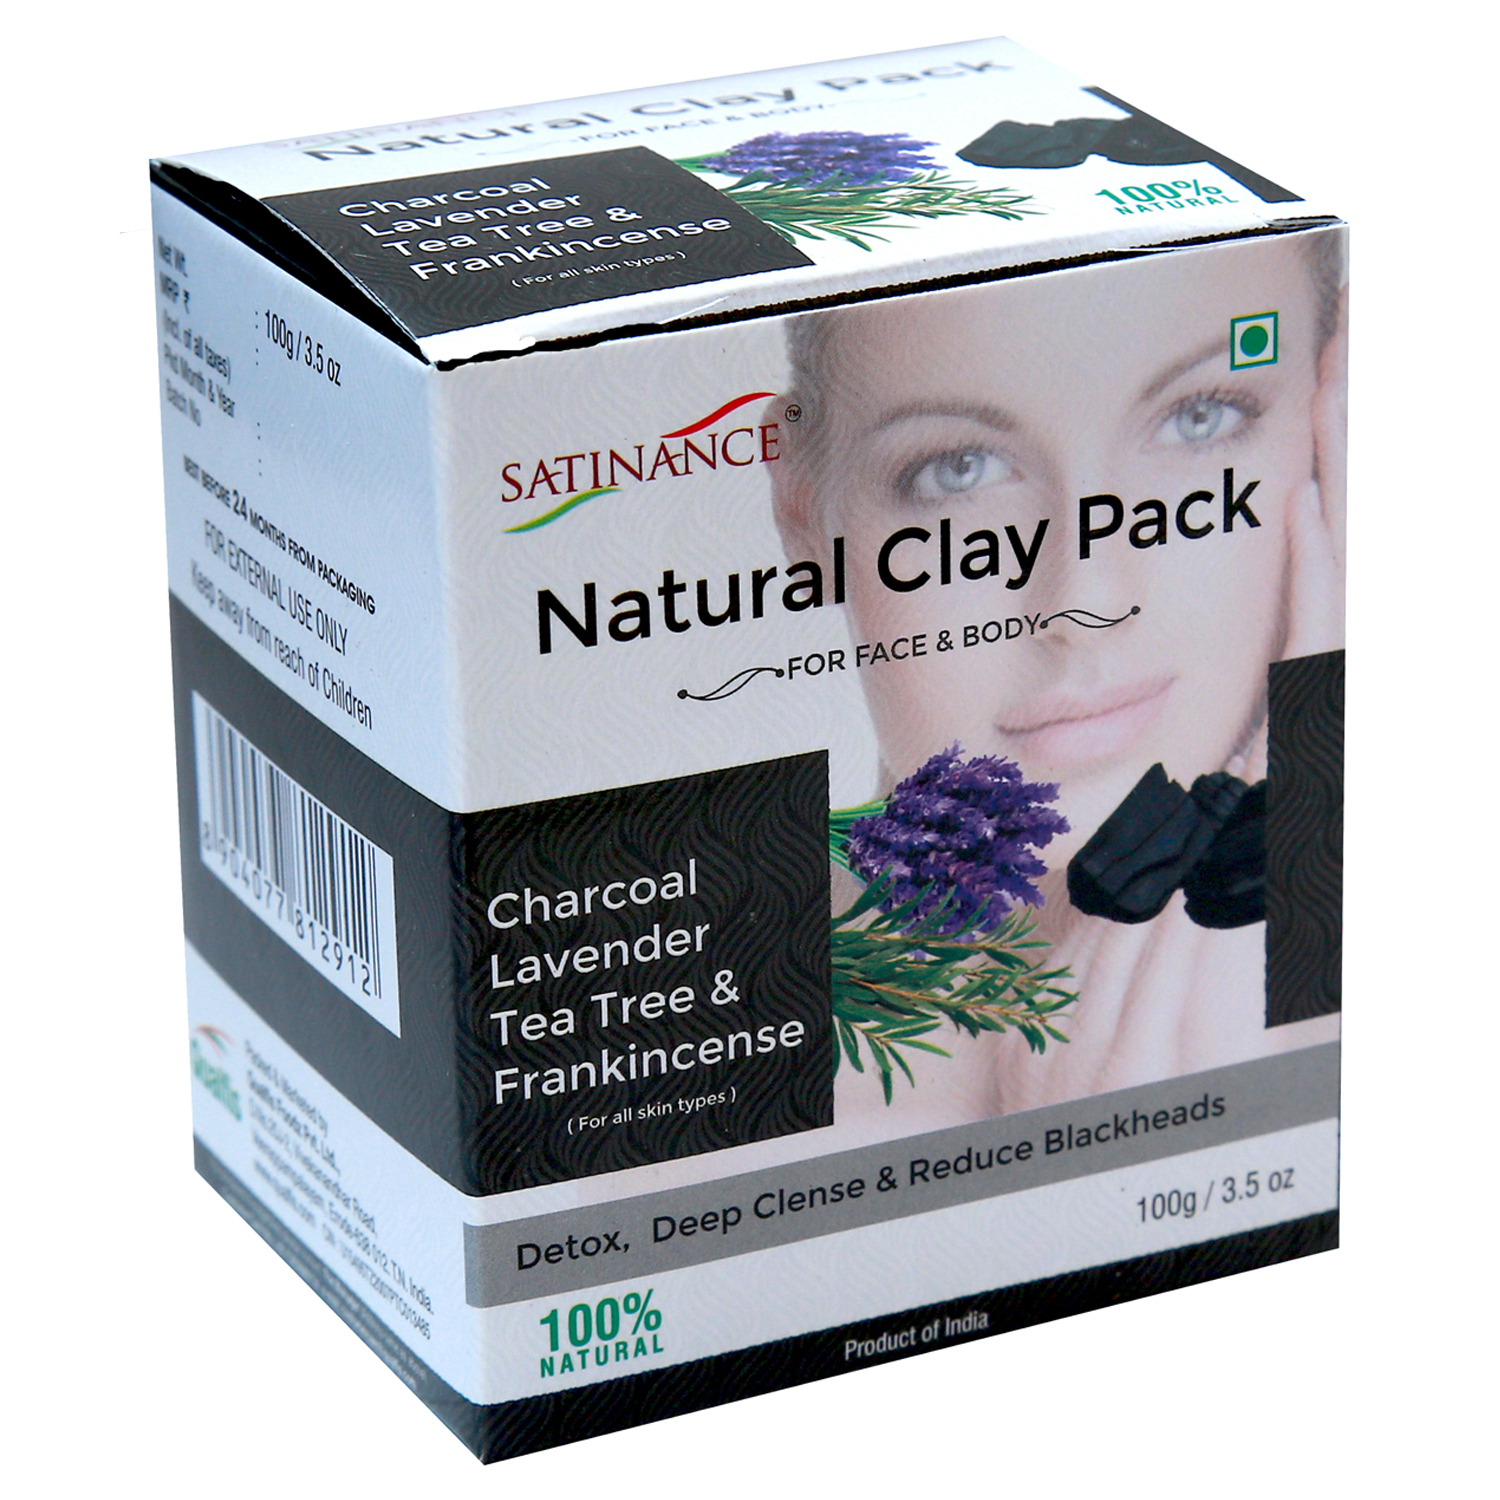 Natural Clay Pack Charcoal, Lavender, Tea Tree & Frankincense – 100g ( Detox, Deep clense & Reduce Blackheads)